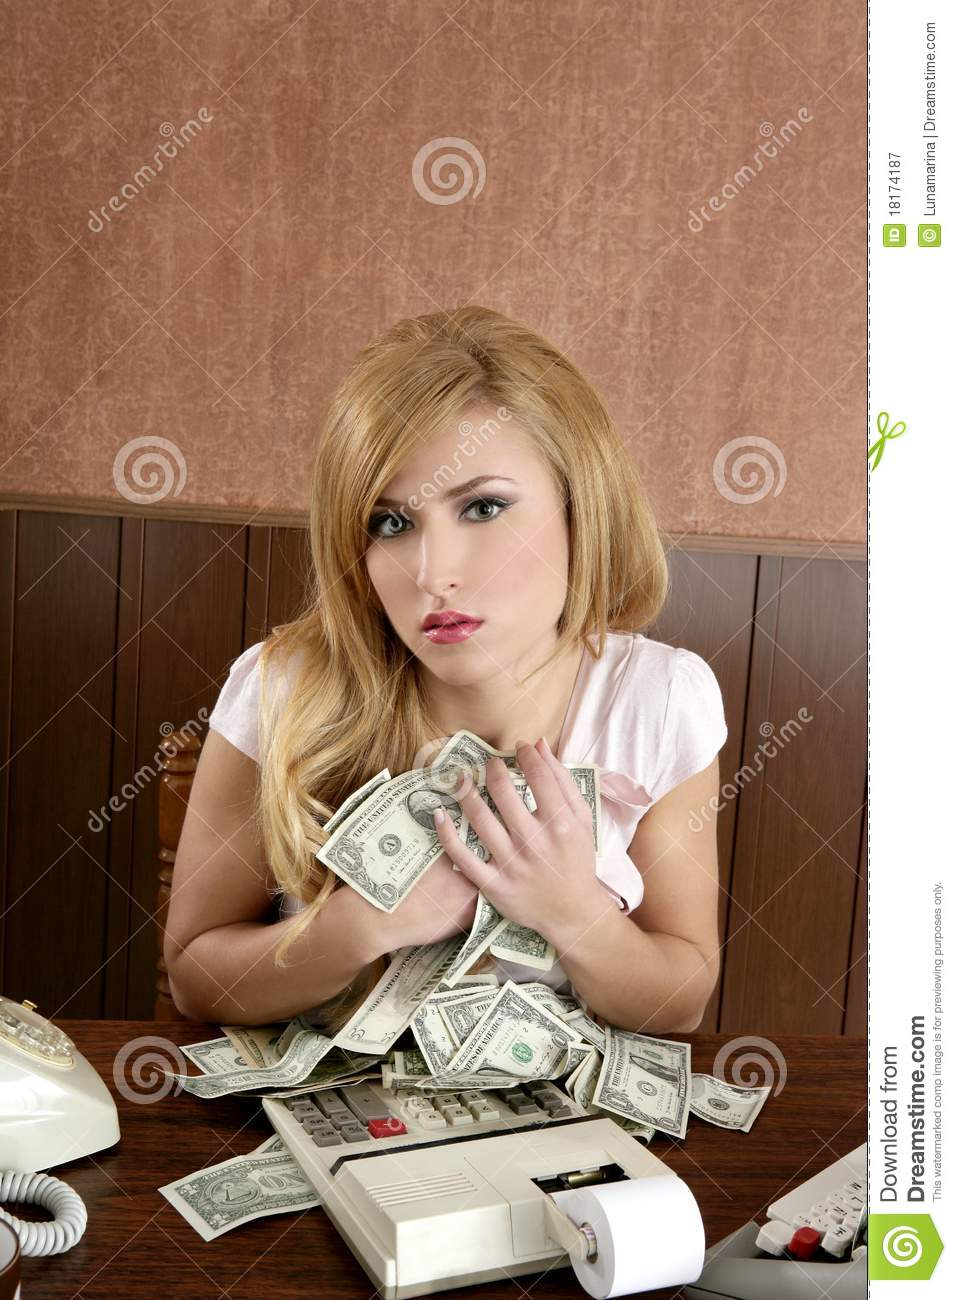 Girl Holding Money Wallpaper Greed Money Retro Woman Office Vintage Accountant Royalty